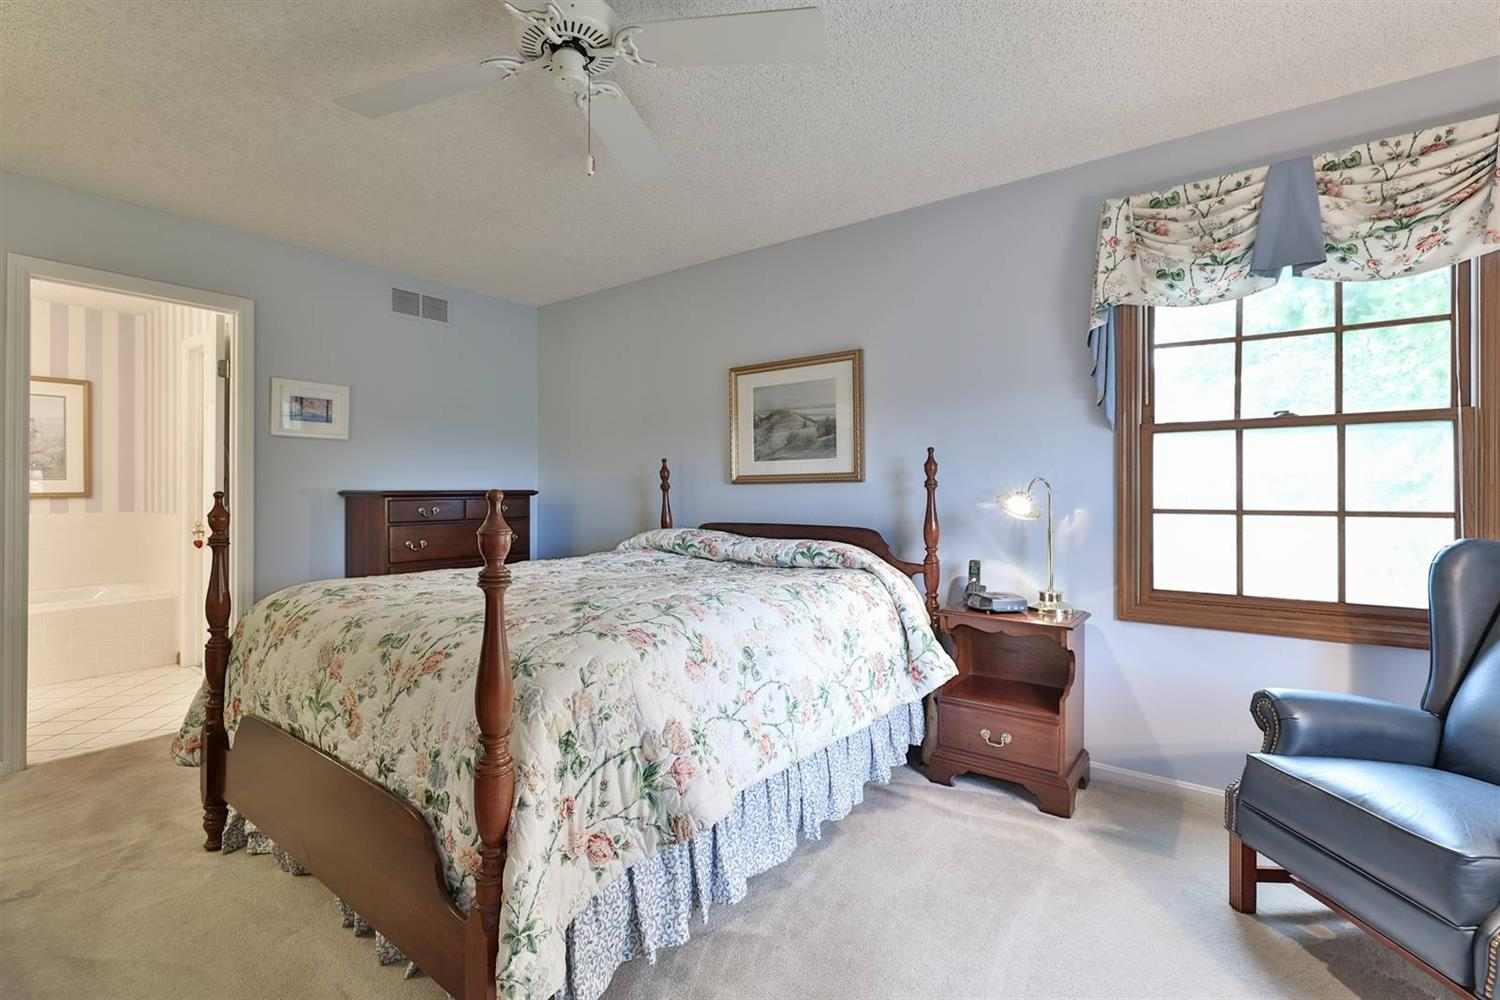 Master suite with ceiling fan, attached full bath.